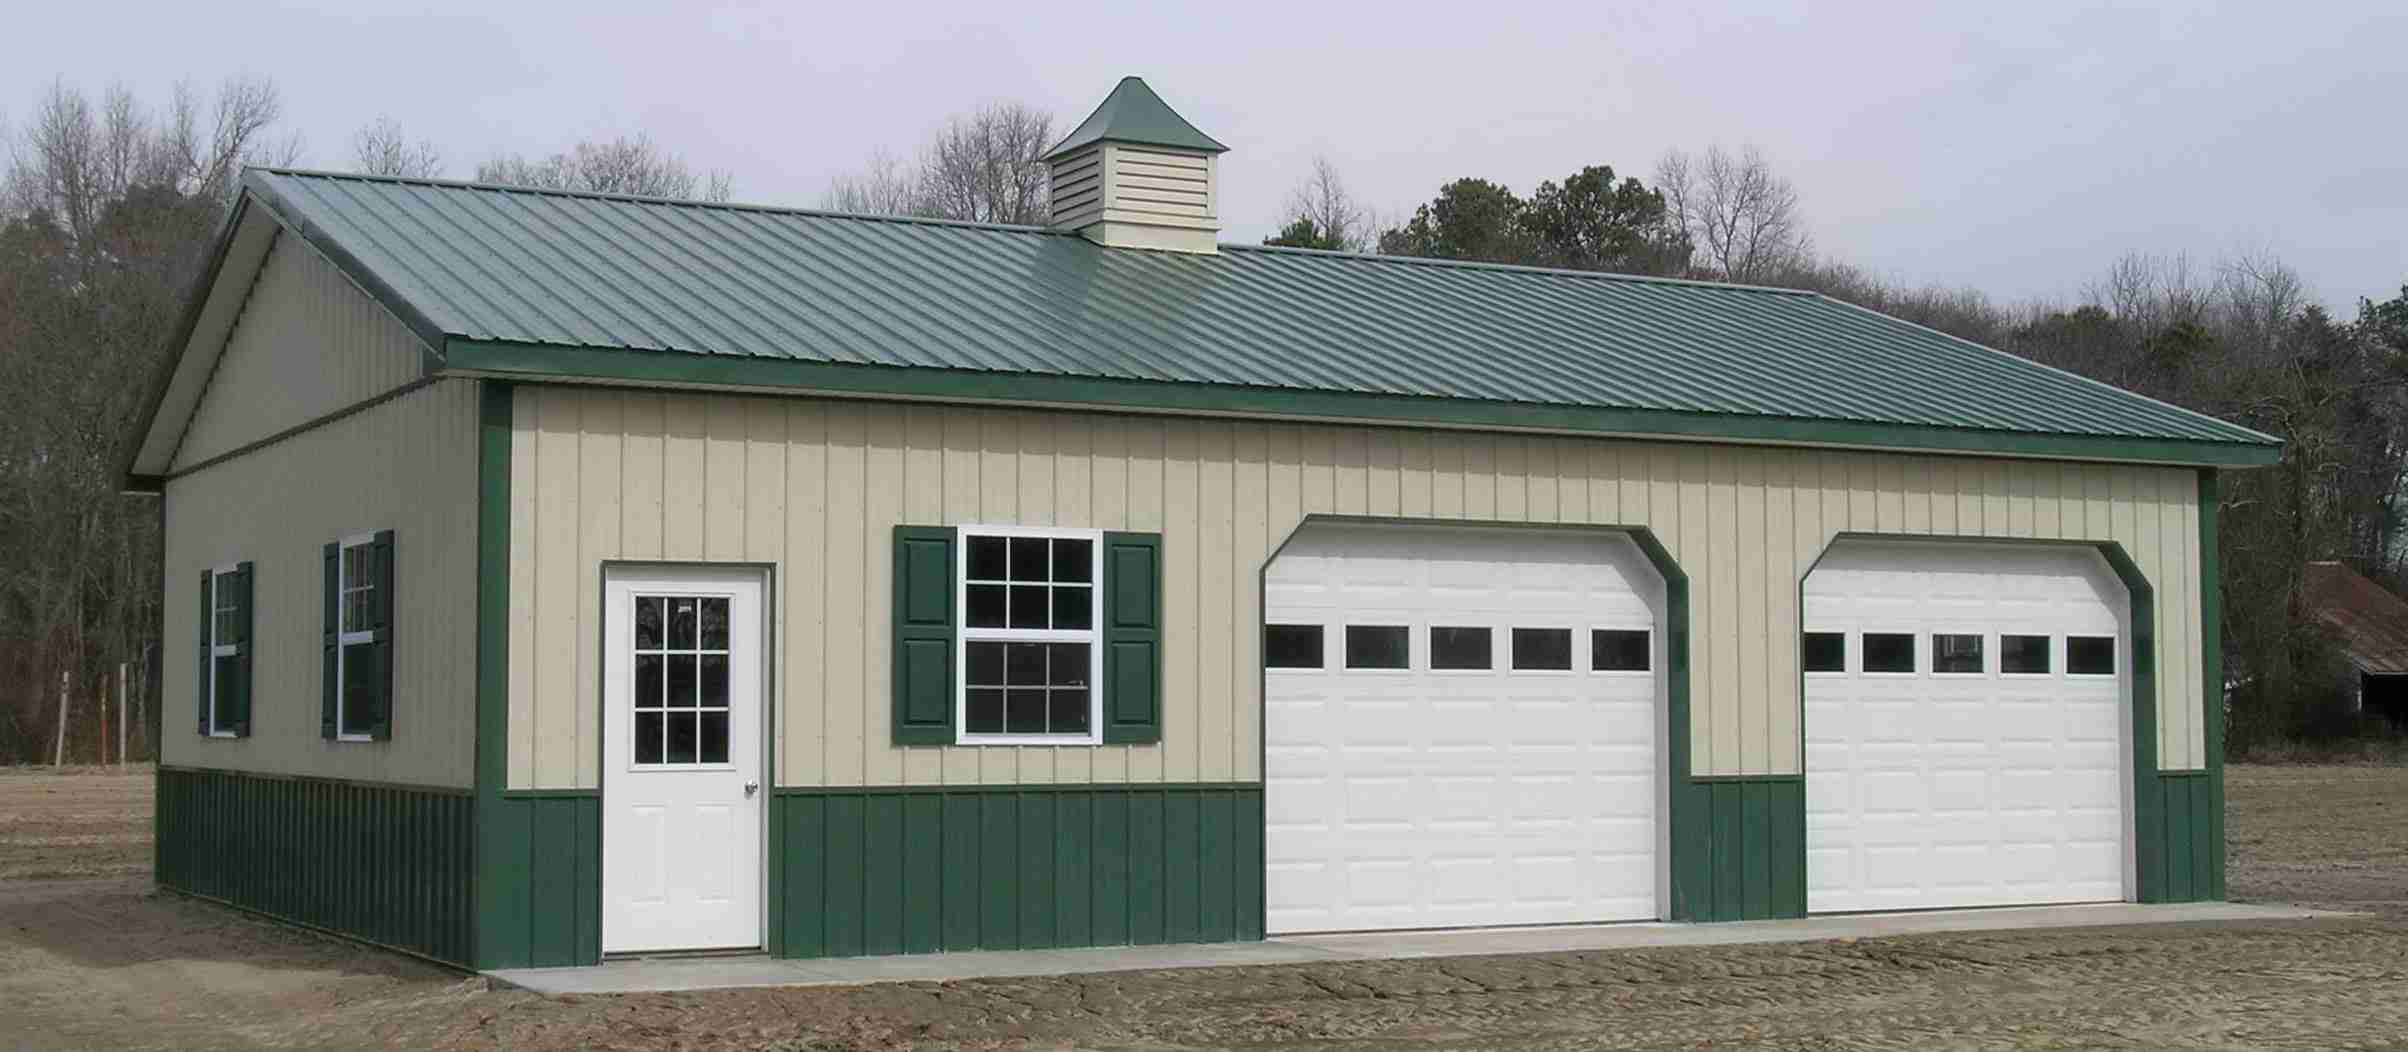 30x40 pole barn metal building plans joy studio design for 30 x 60 garage plans